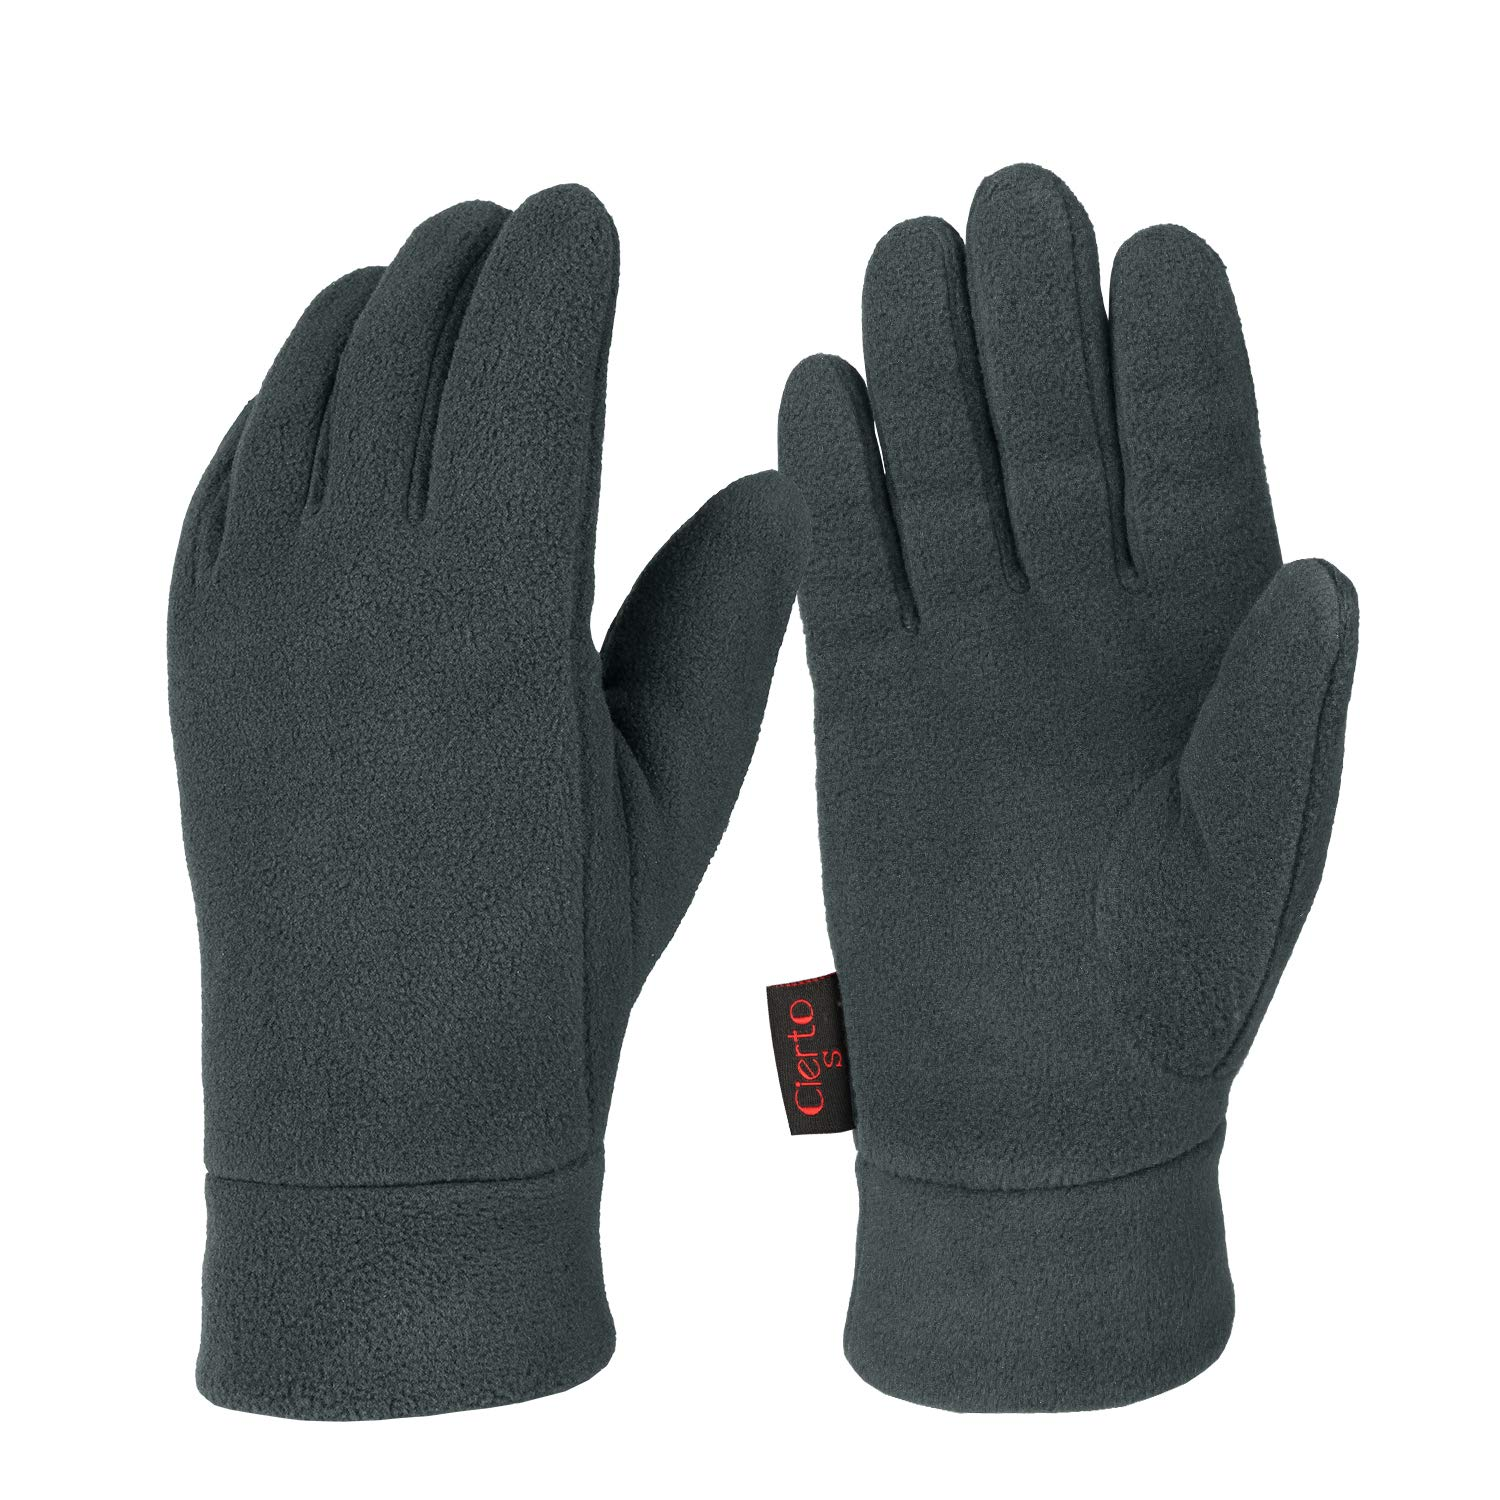 98f1528352 Winter Gloves For Men And Women Hand Protection Polar Fleece And Cotton  Lining